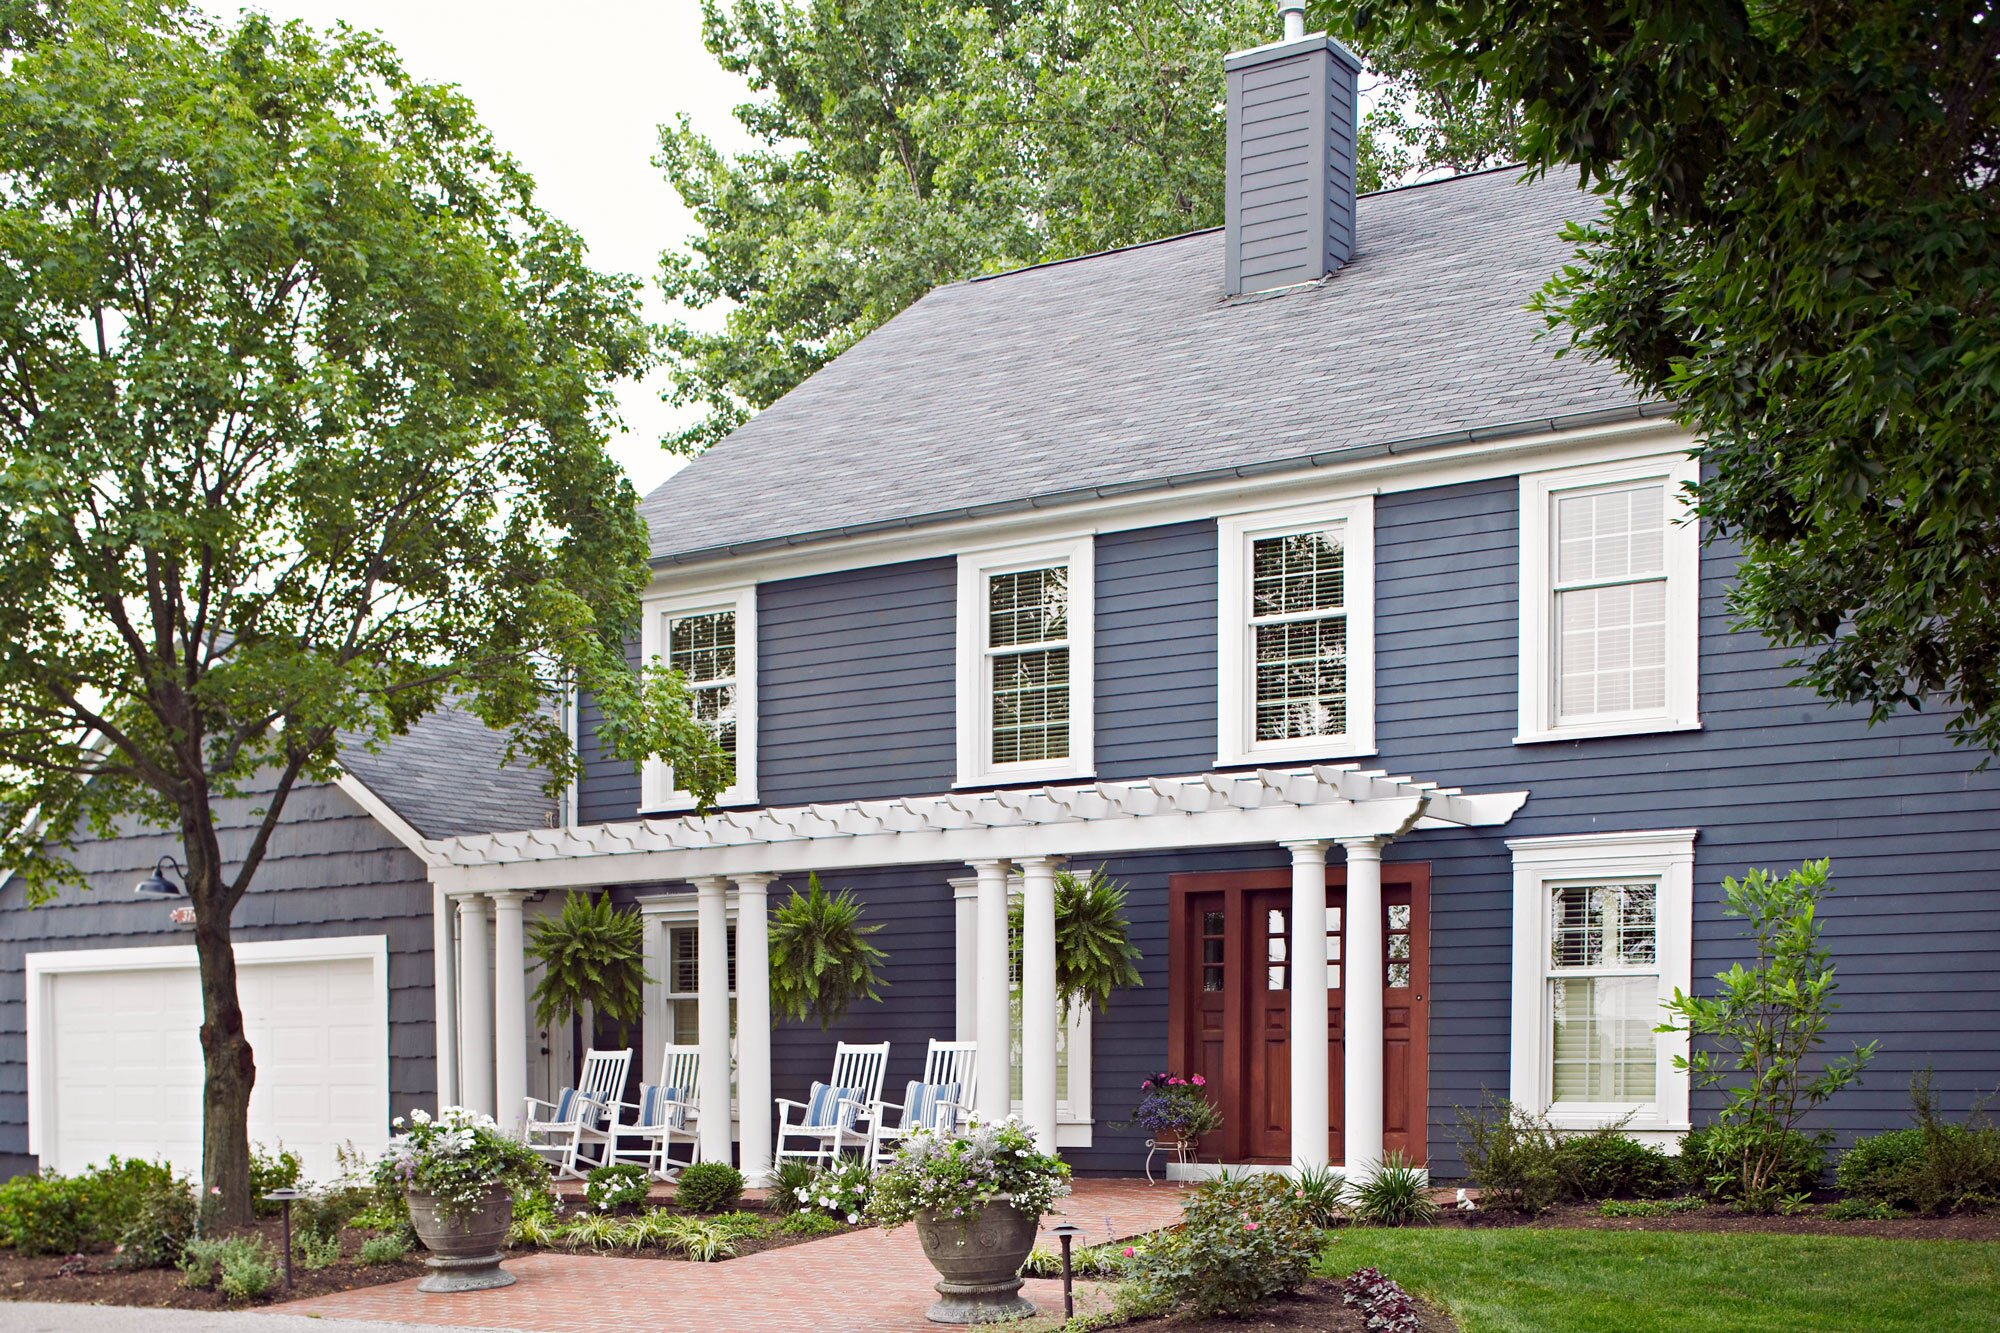 20 Exterior Entryway Designs With Charming Curb Appeal Better Homes Gardens